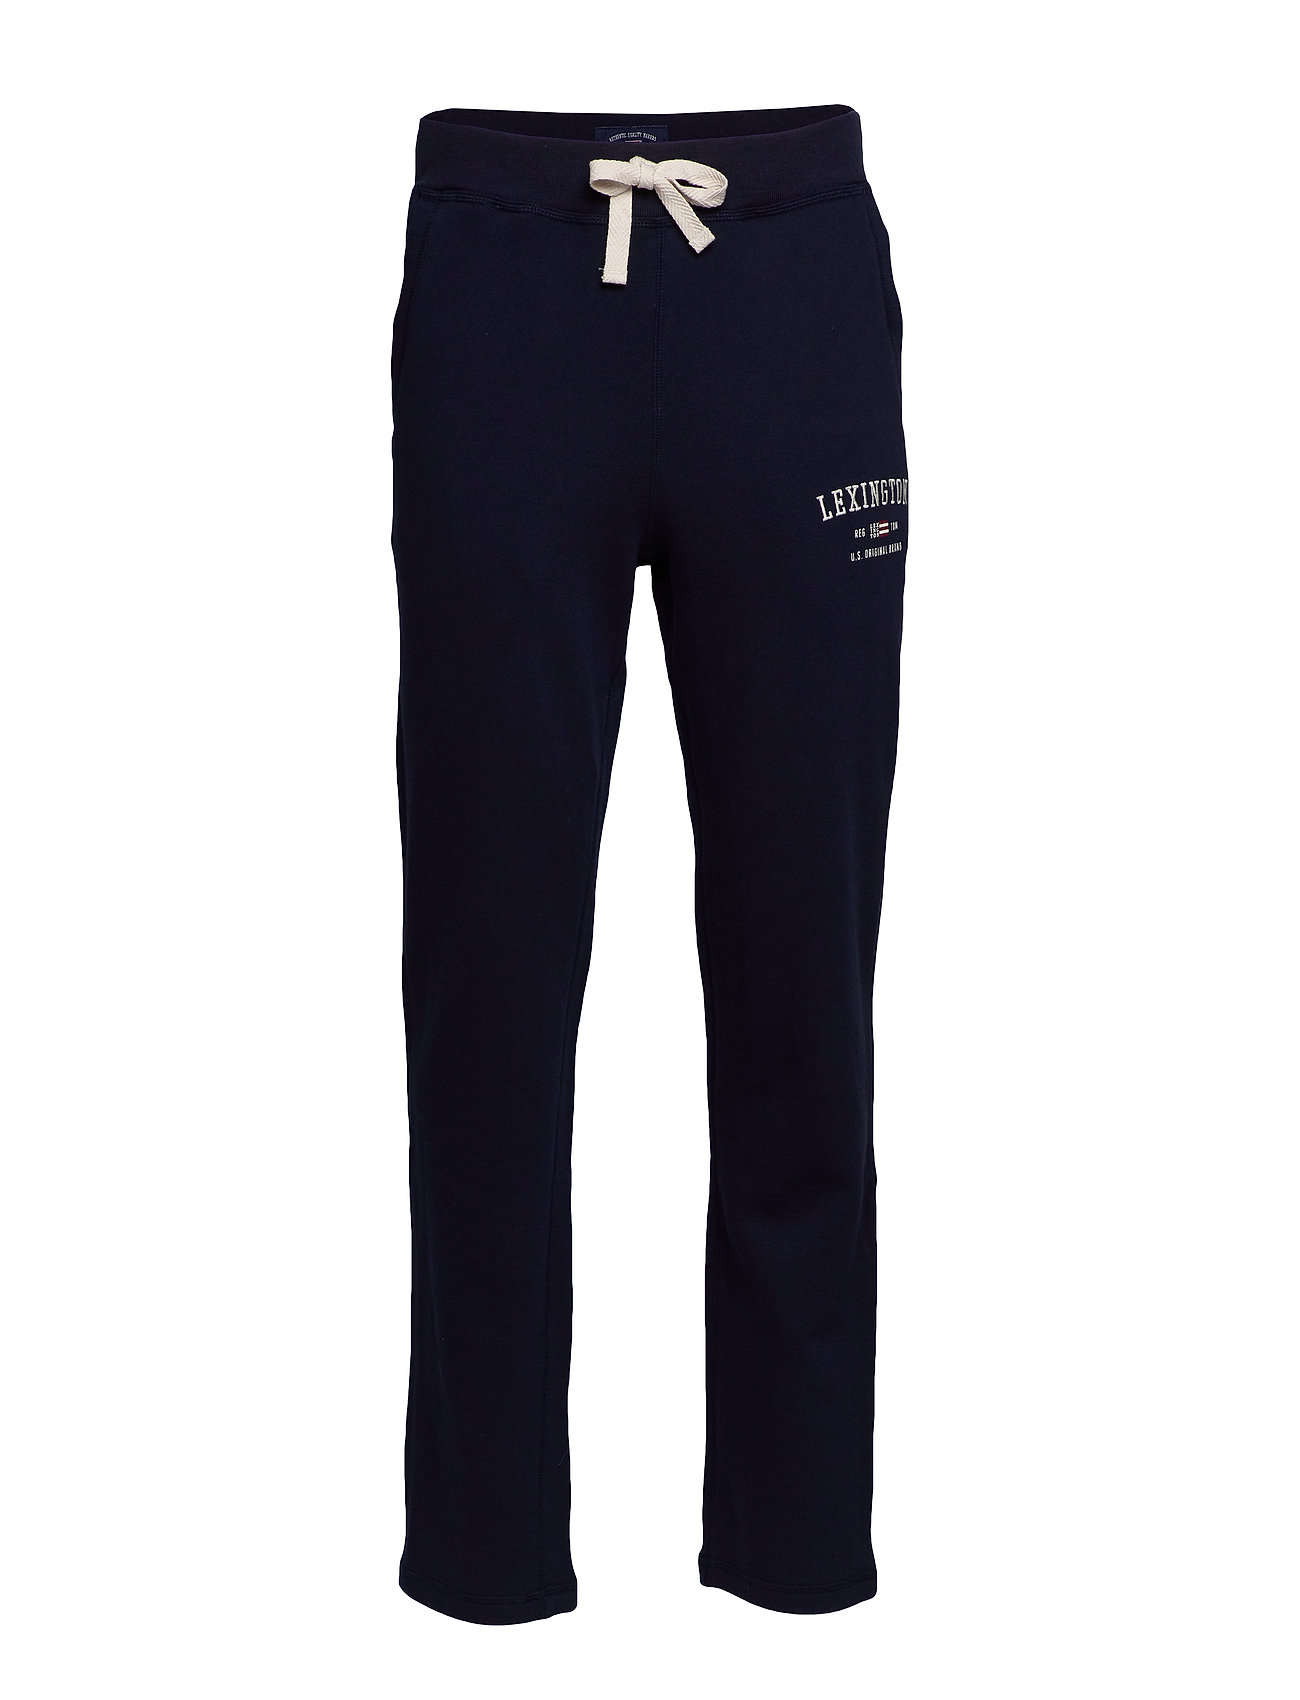 Lexington Clothing Brandon Jersey Pants - DARK BLUE